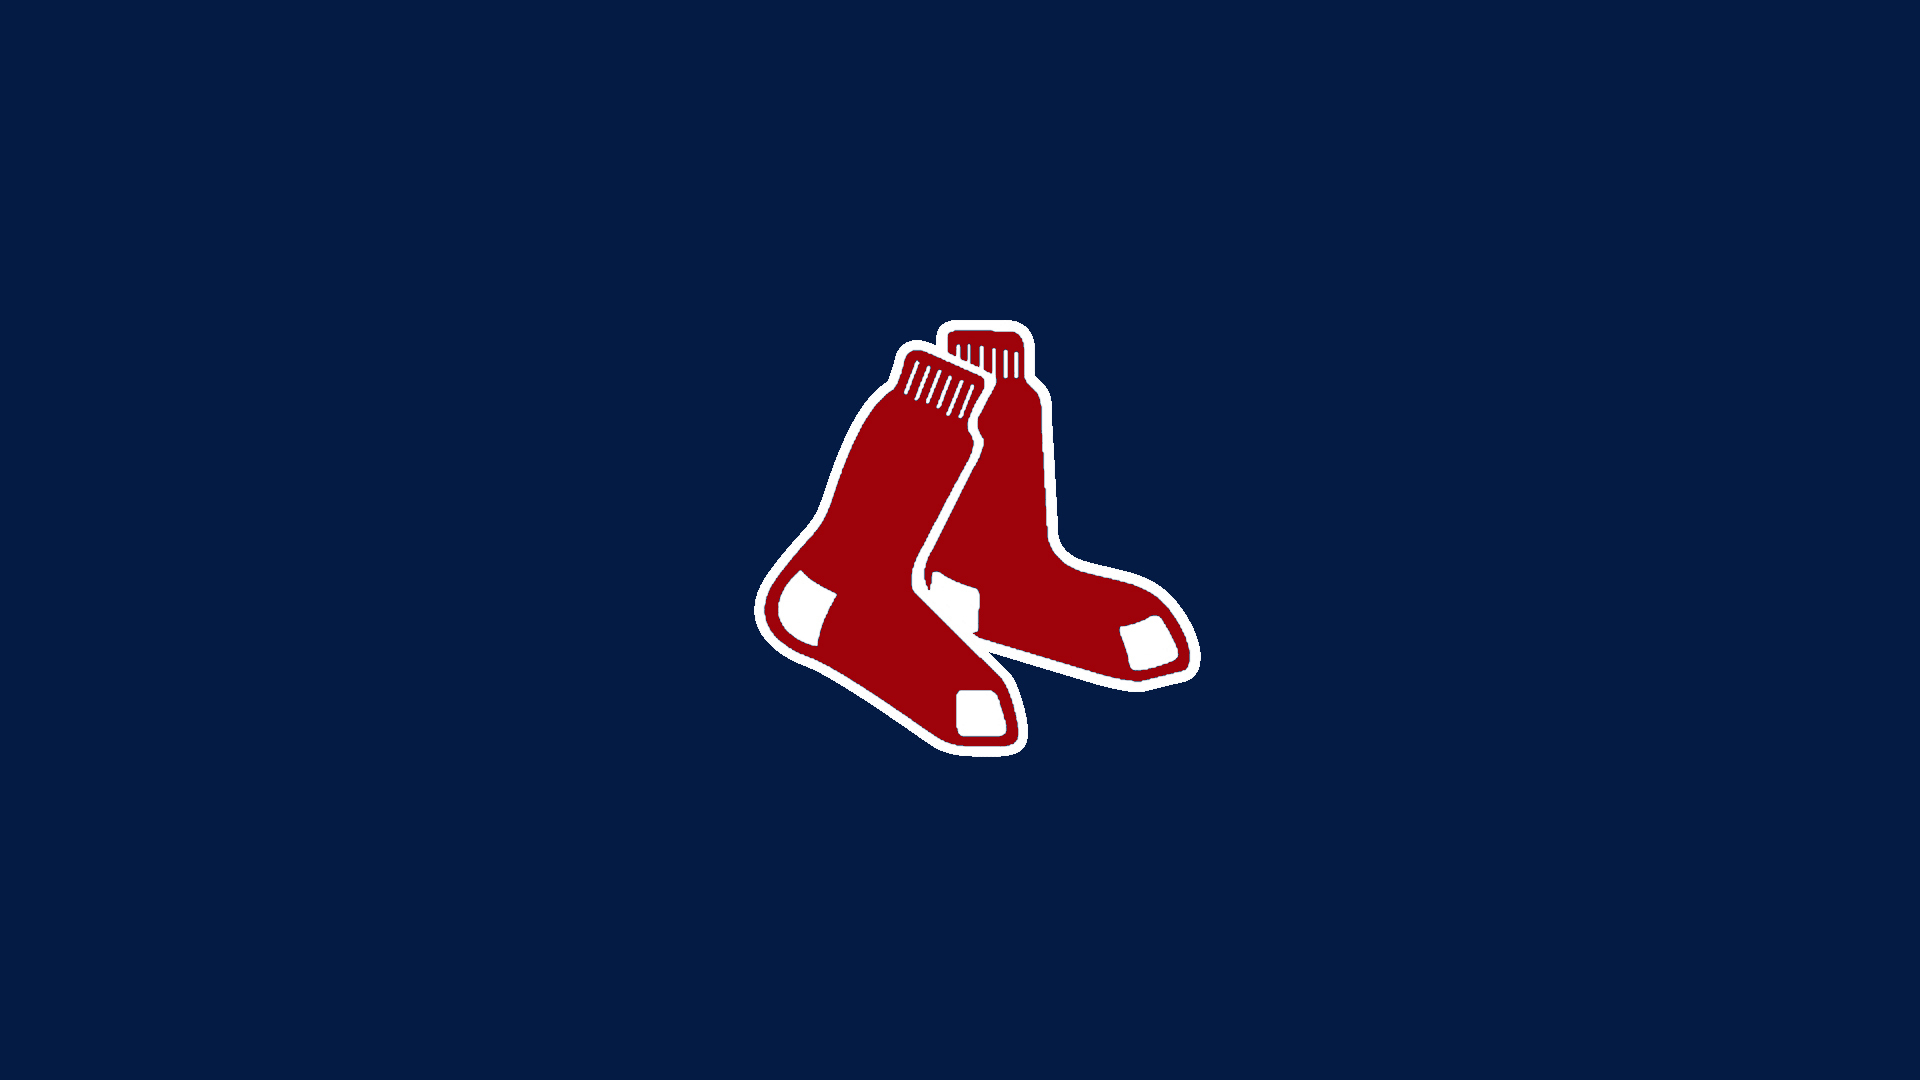 Boston Red Sox background Boston Red Sox wallpapers | Boston Red Sox background - Page 2